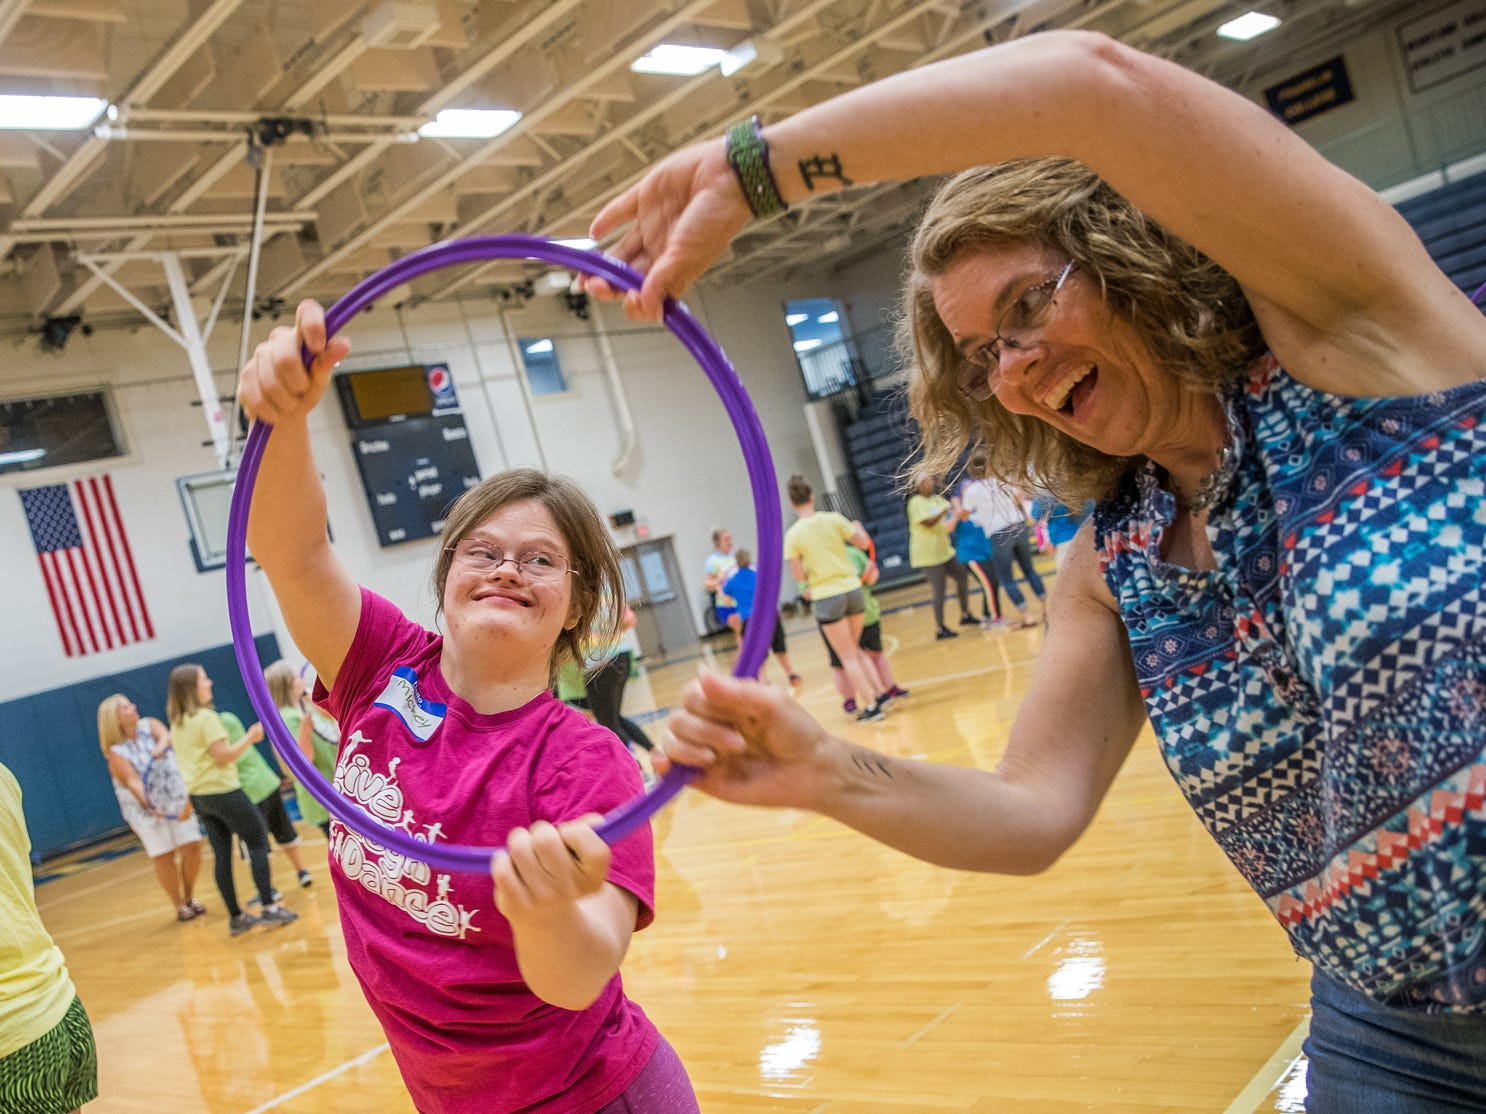 Mickey Deputy (middle) and her mother, Jenny (right), practice for an upcoming dance performance during Live Laugh Dance on Tuesday, July 10, 2018. The summer program, for young adults with Down syndrome, promotes movement and social interaction through dance. This is the eighth year of the program that was started by IUPUI.